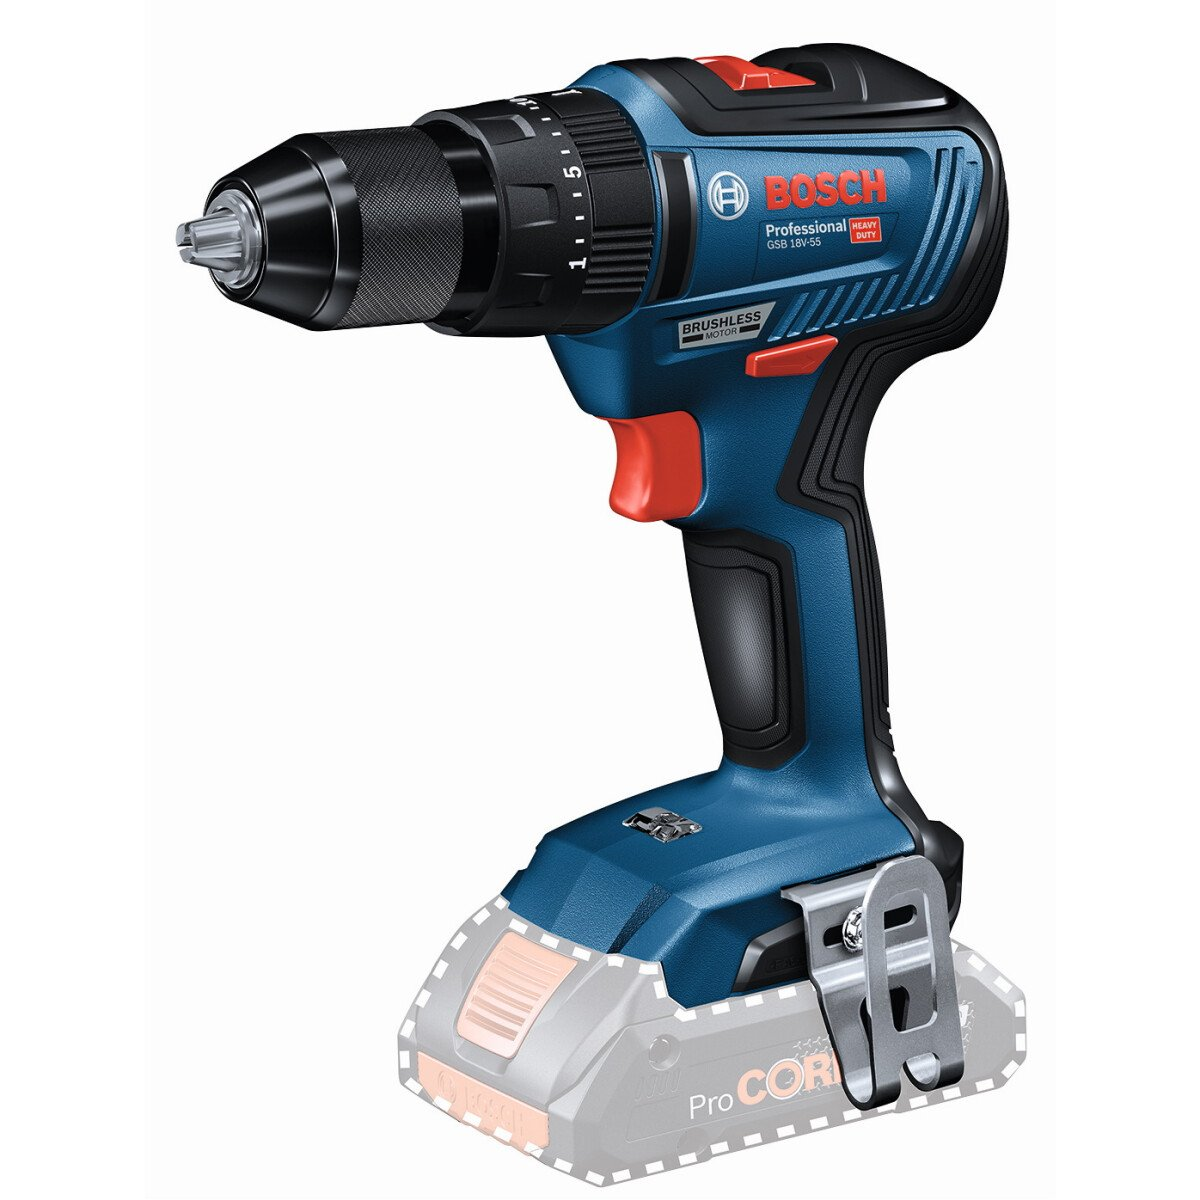 Bosch GSB 18V-55 N 18V Body Only Brushless 2 Speed Combi Drill with Metal Chuck in Carton Connection Ready